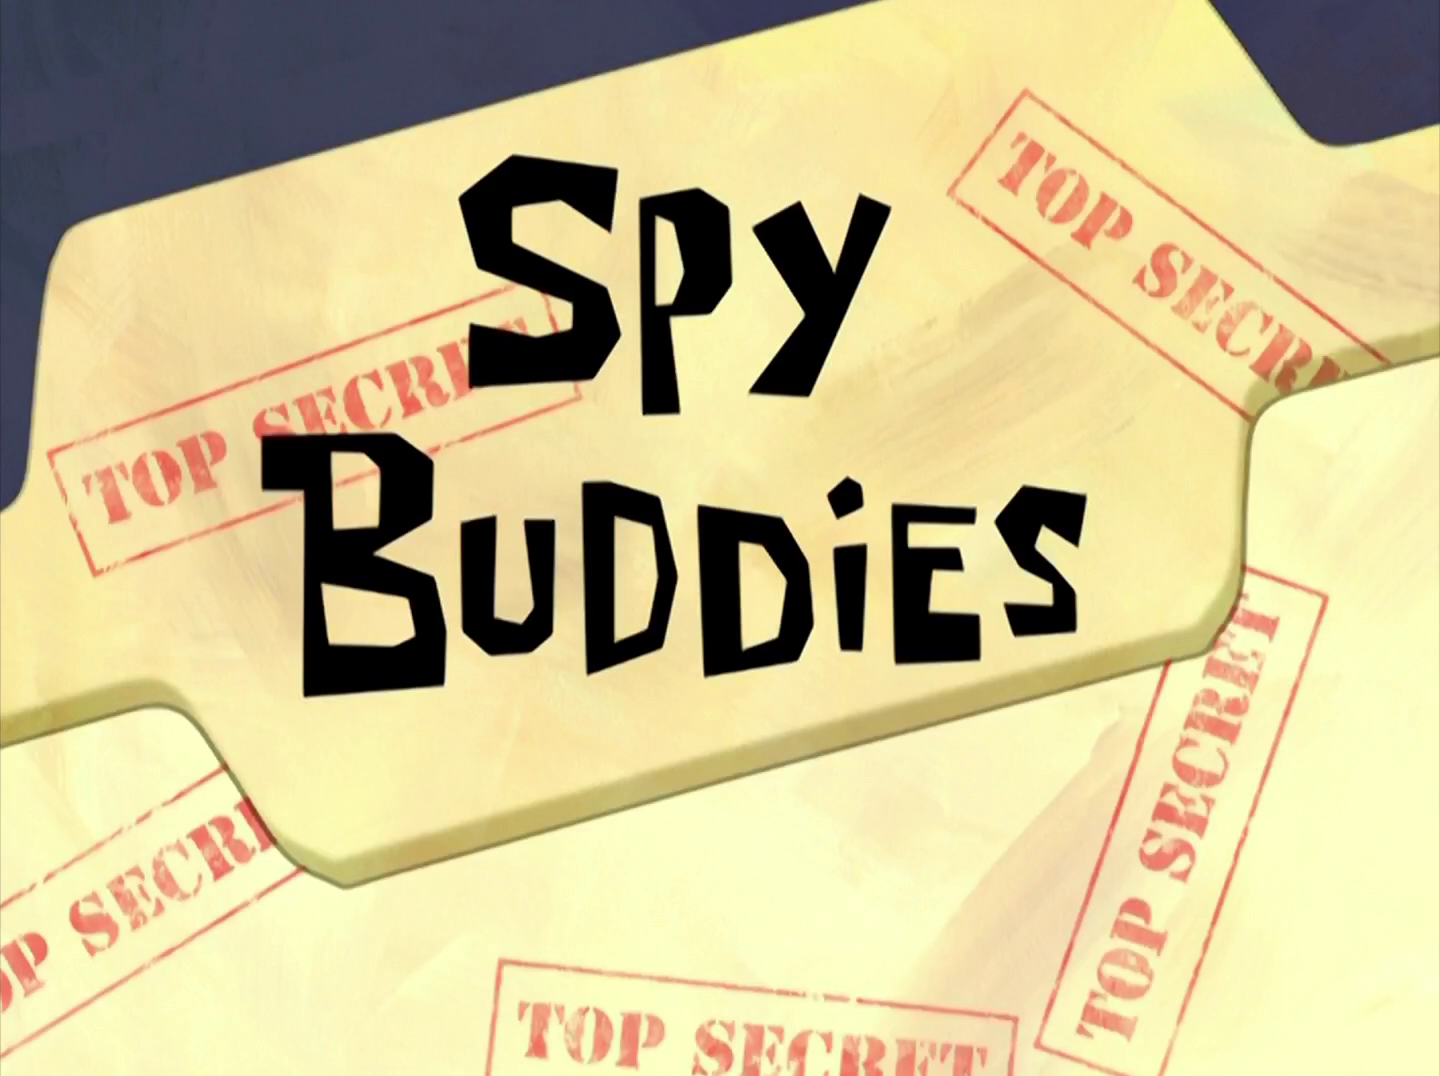 Spy Buddies/transcript